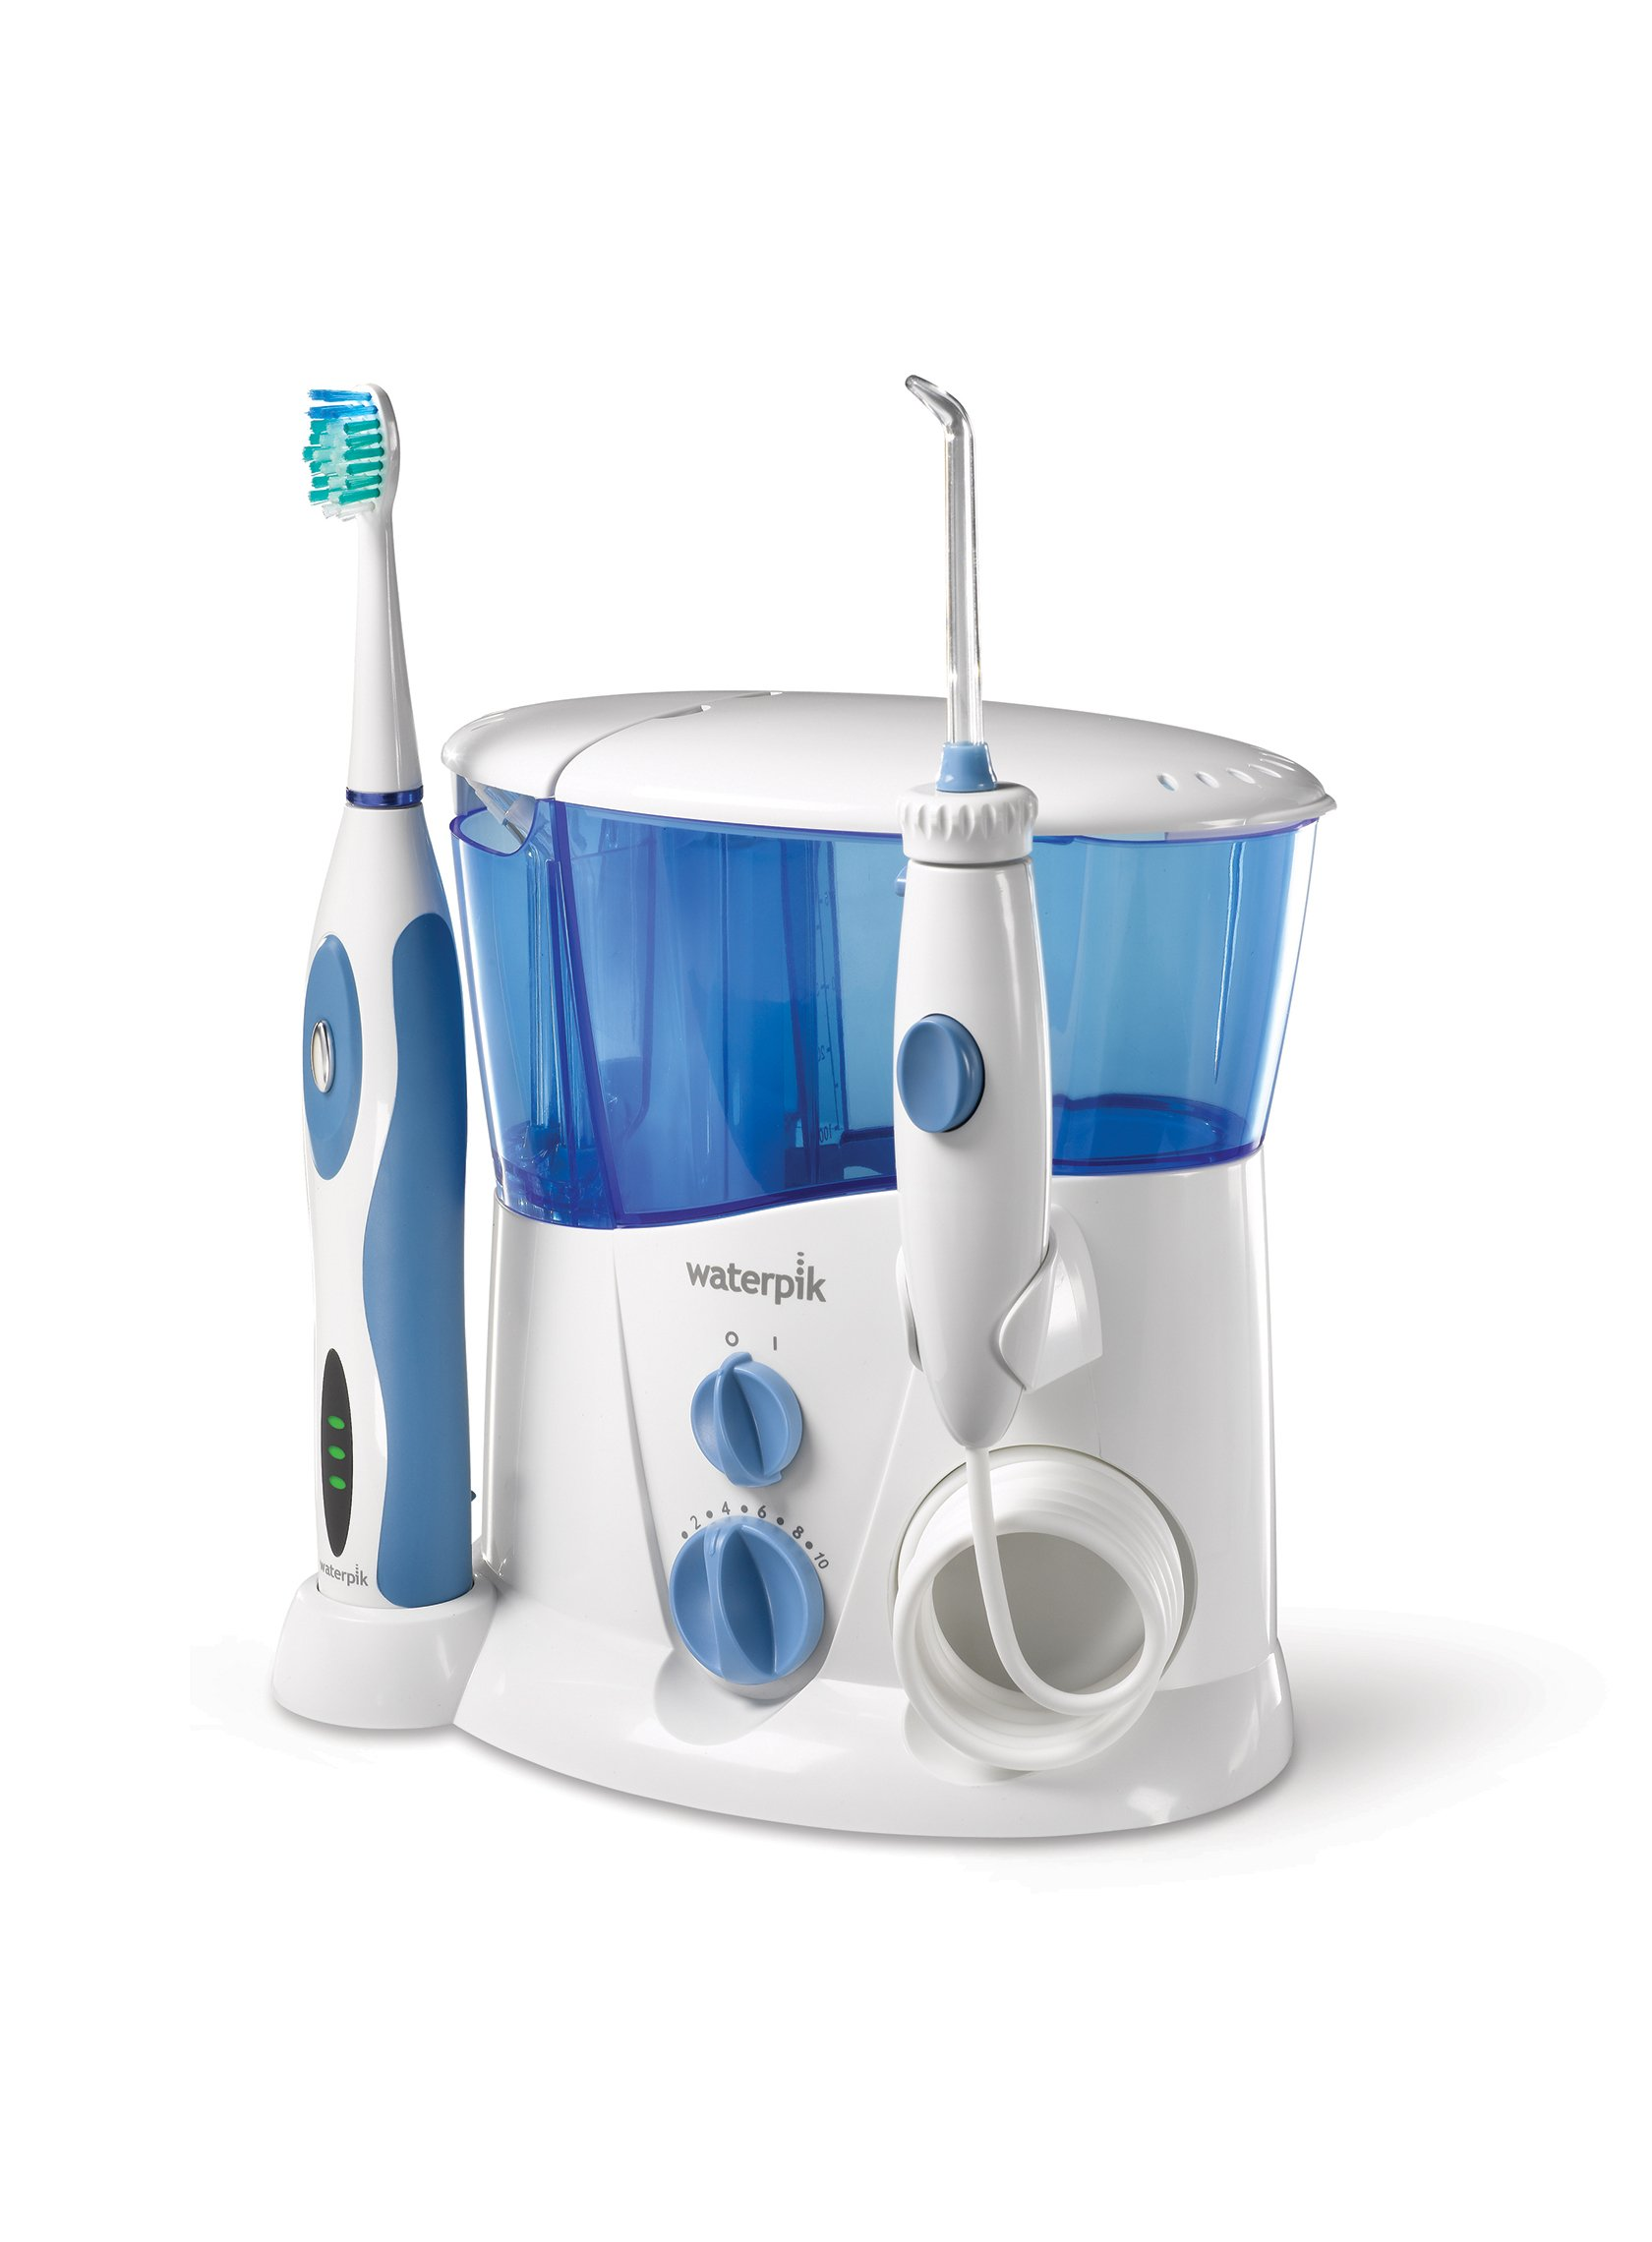 Waterpik Complete Care Wp900 Electric Waterflosser and Sonic Toothbrush All-in-1 by Bathroom Accessories by Waterpik (Image #1)